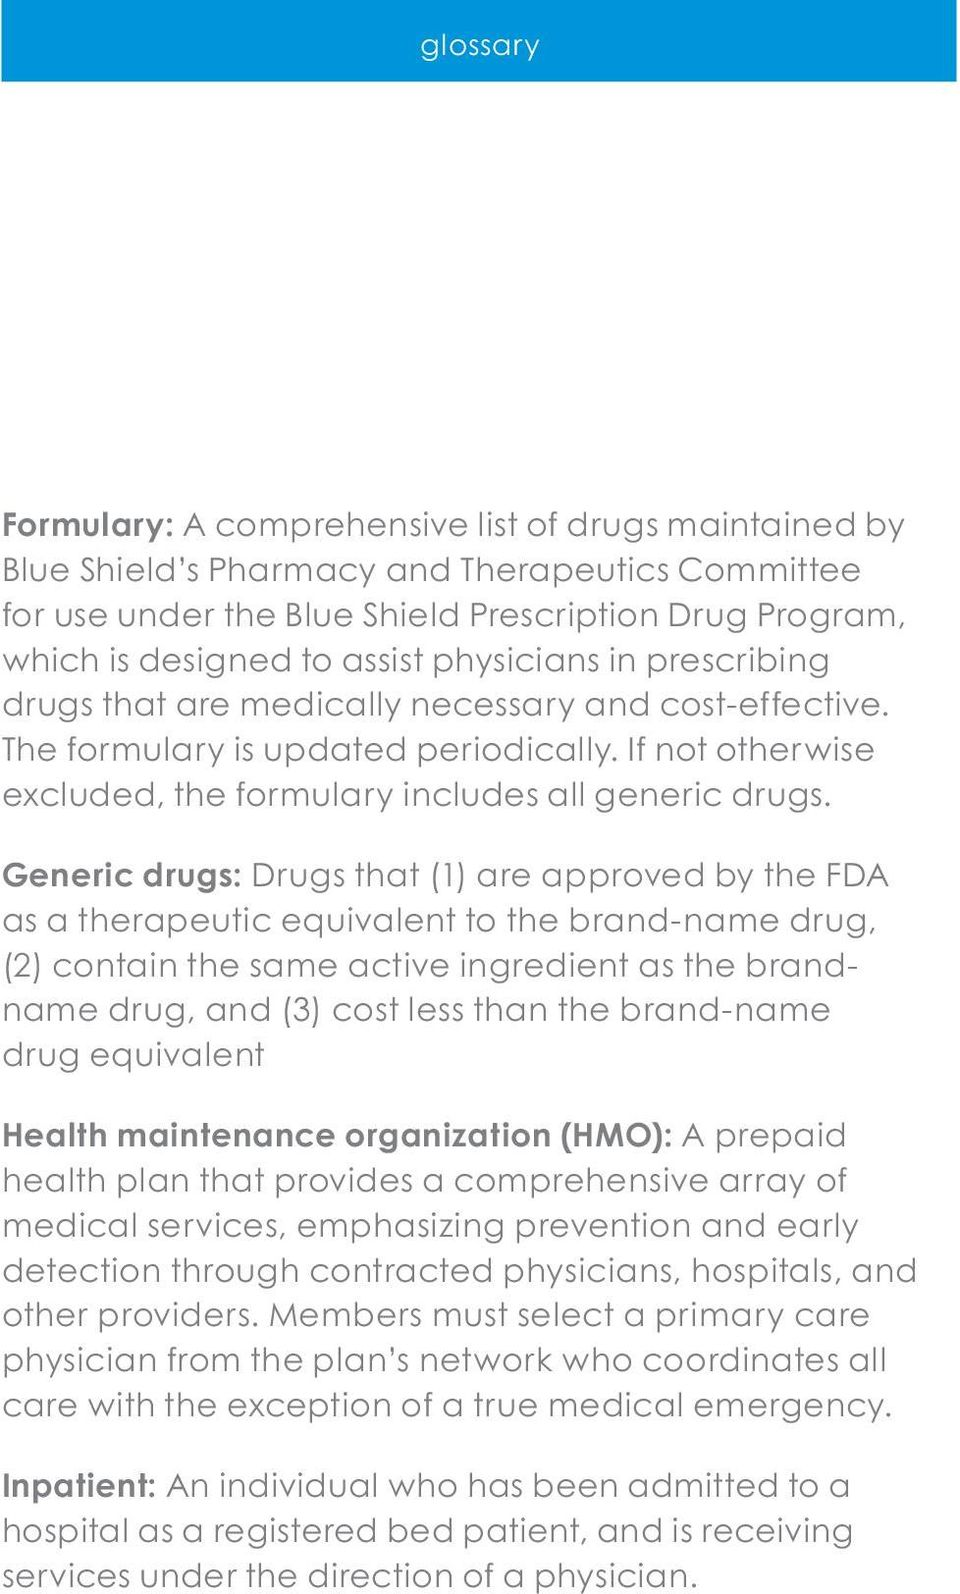 Generic drugs: Drugs that (1) are approved by the FDA as a therapeutic equivalent to the brand-name drug, (2) contain the same active ingredient as the brandname drug, and (3) cost less than the